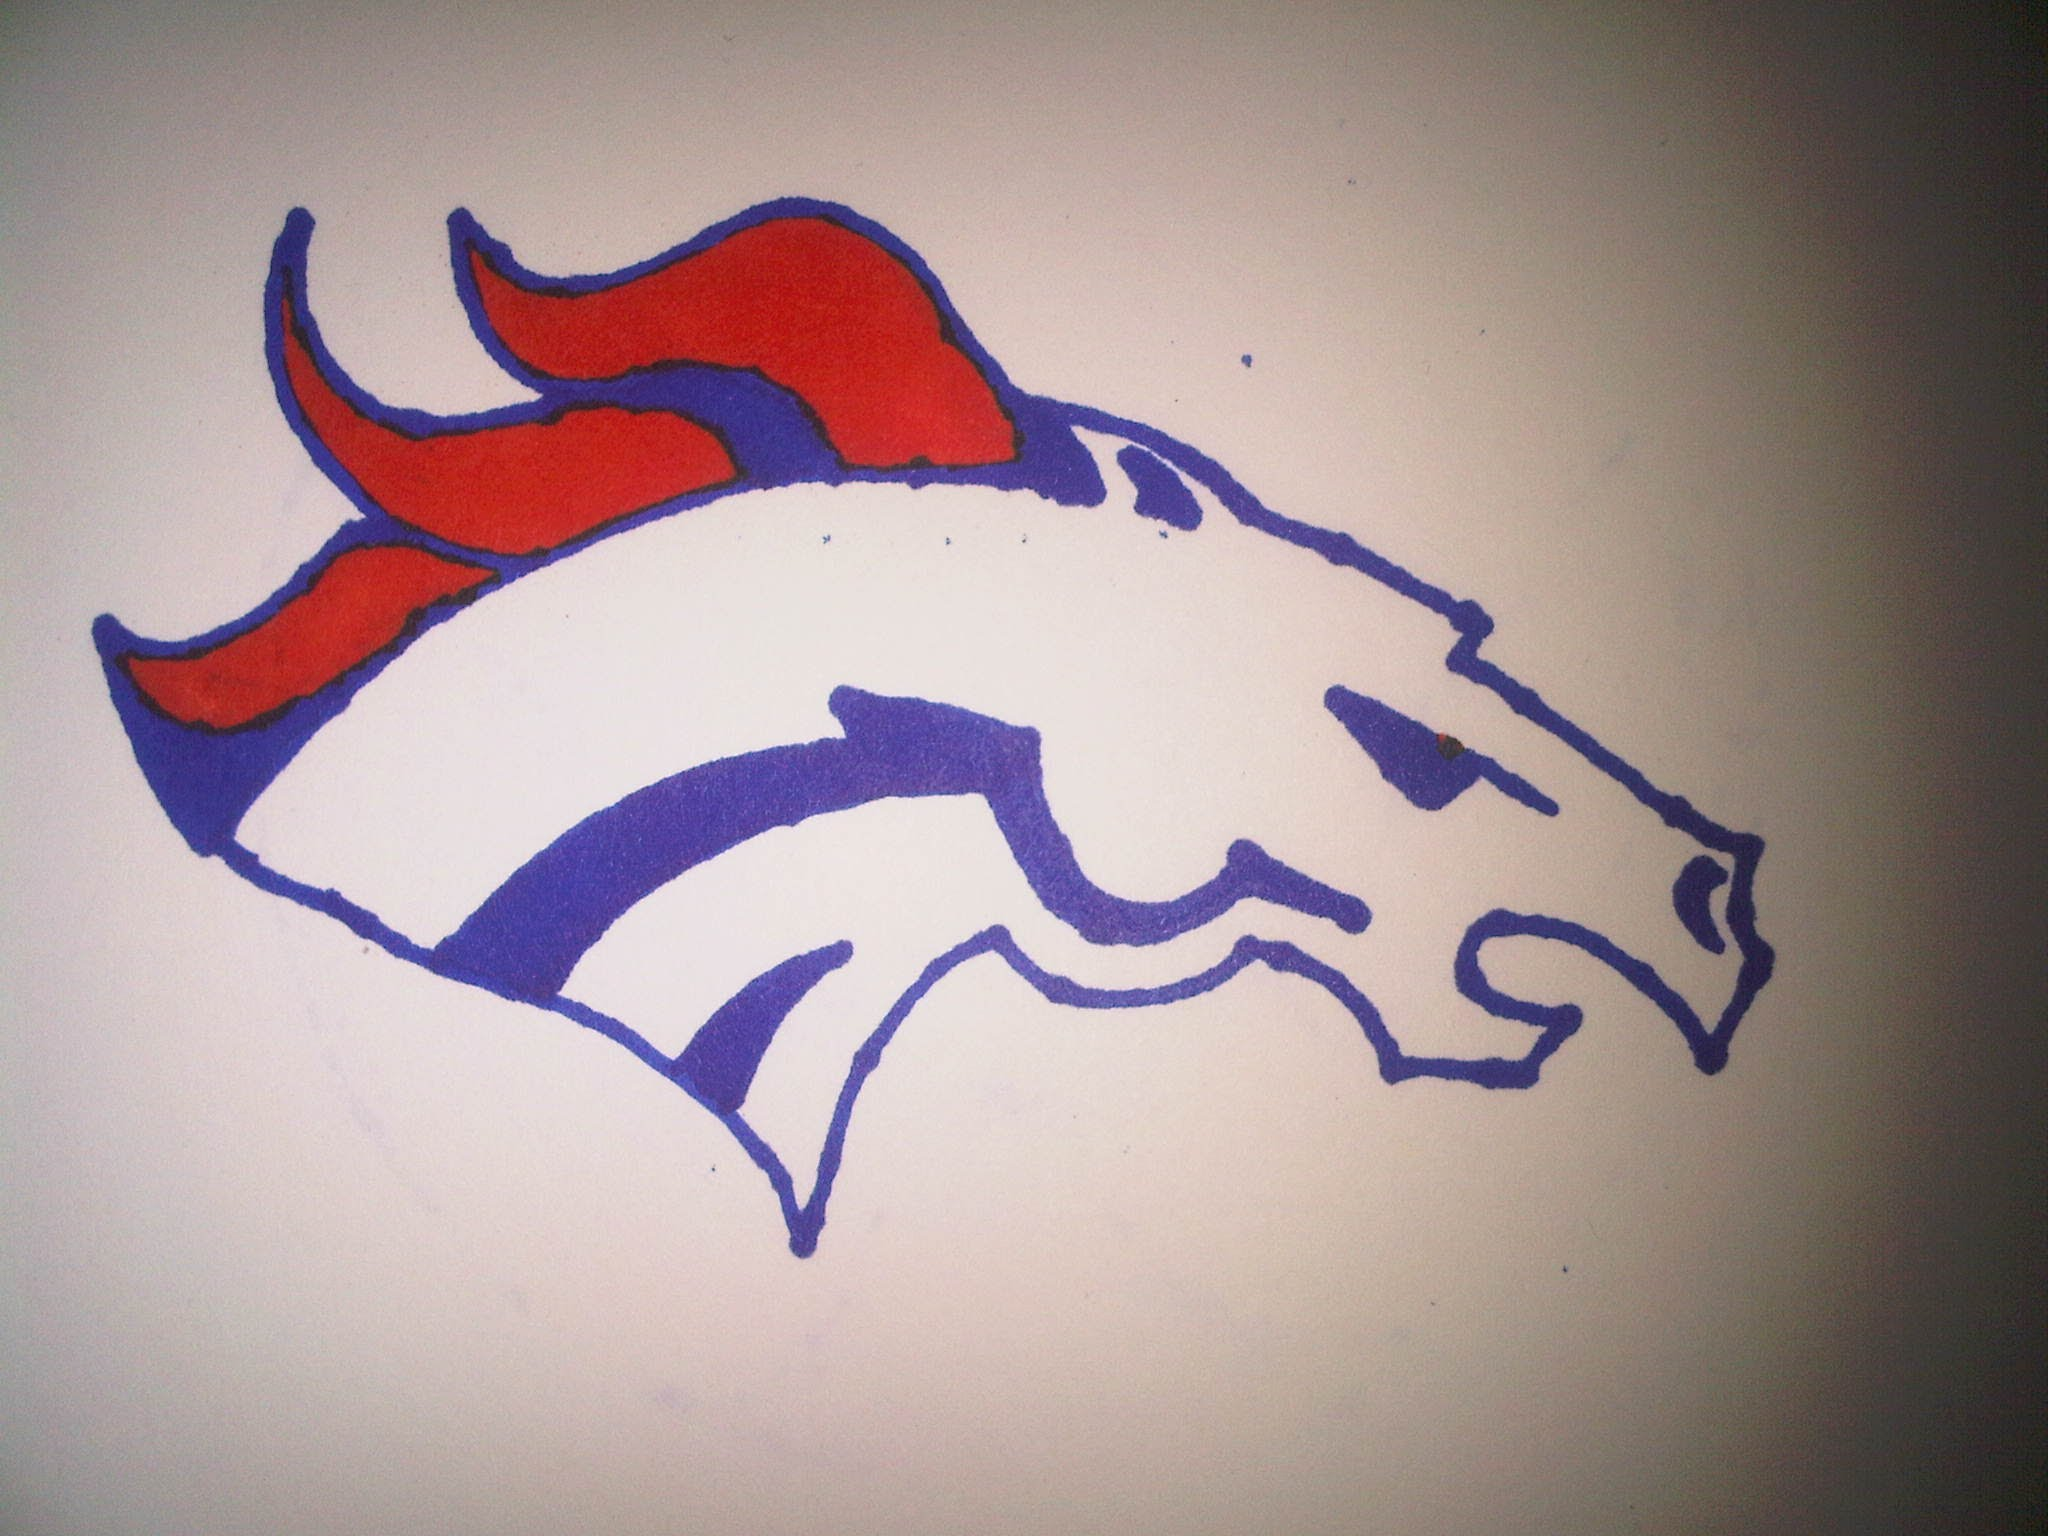 2048x1536 How To Draw The Denver Broncos Logo